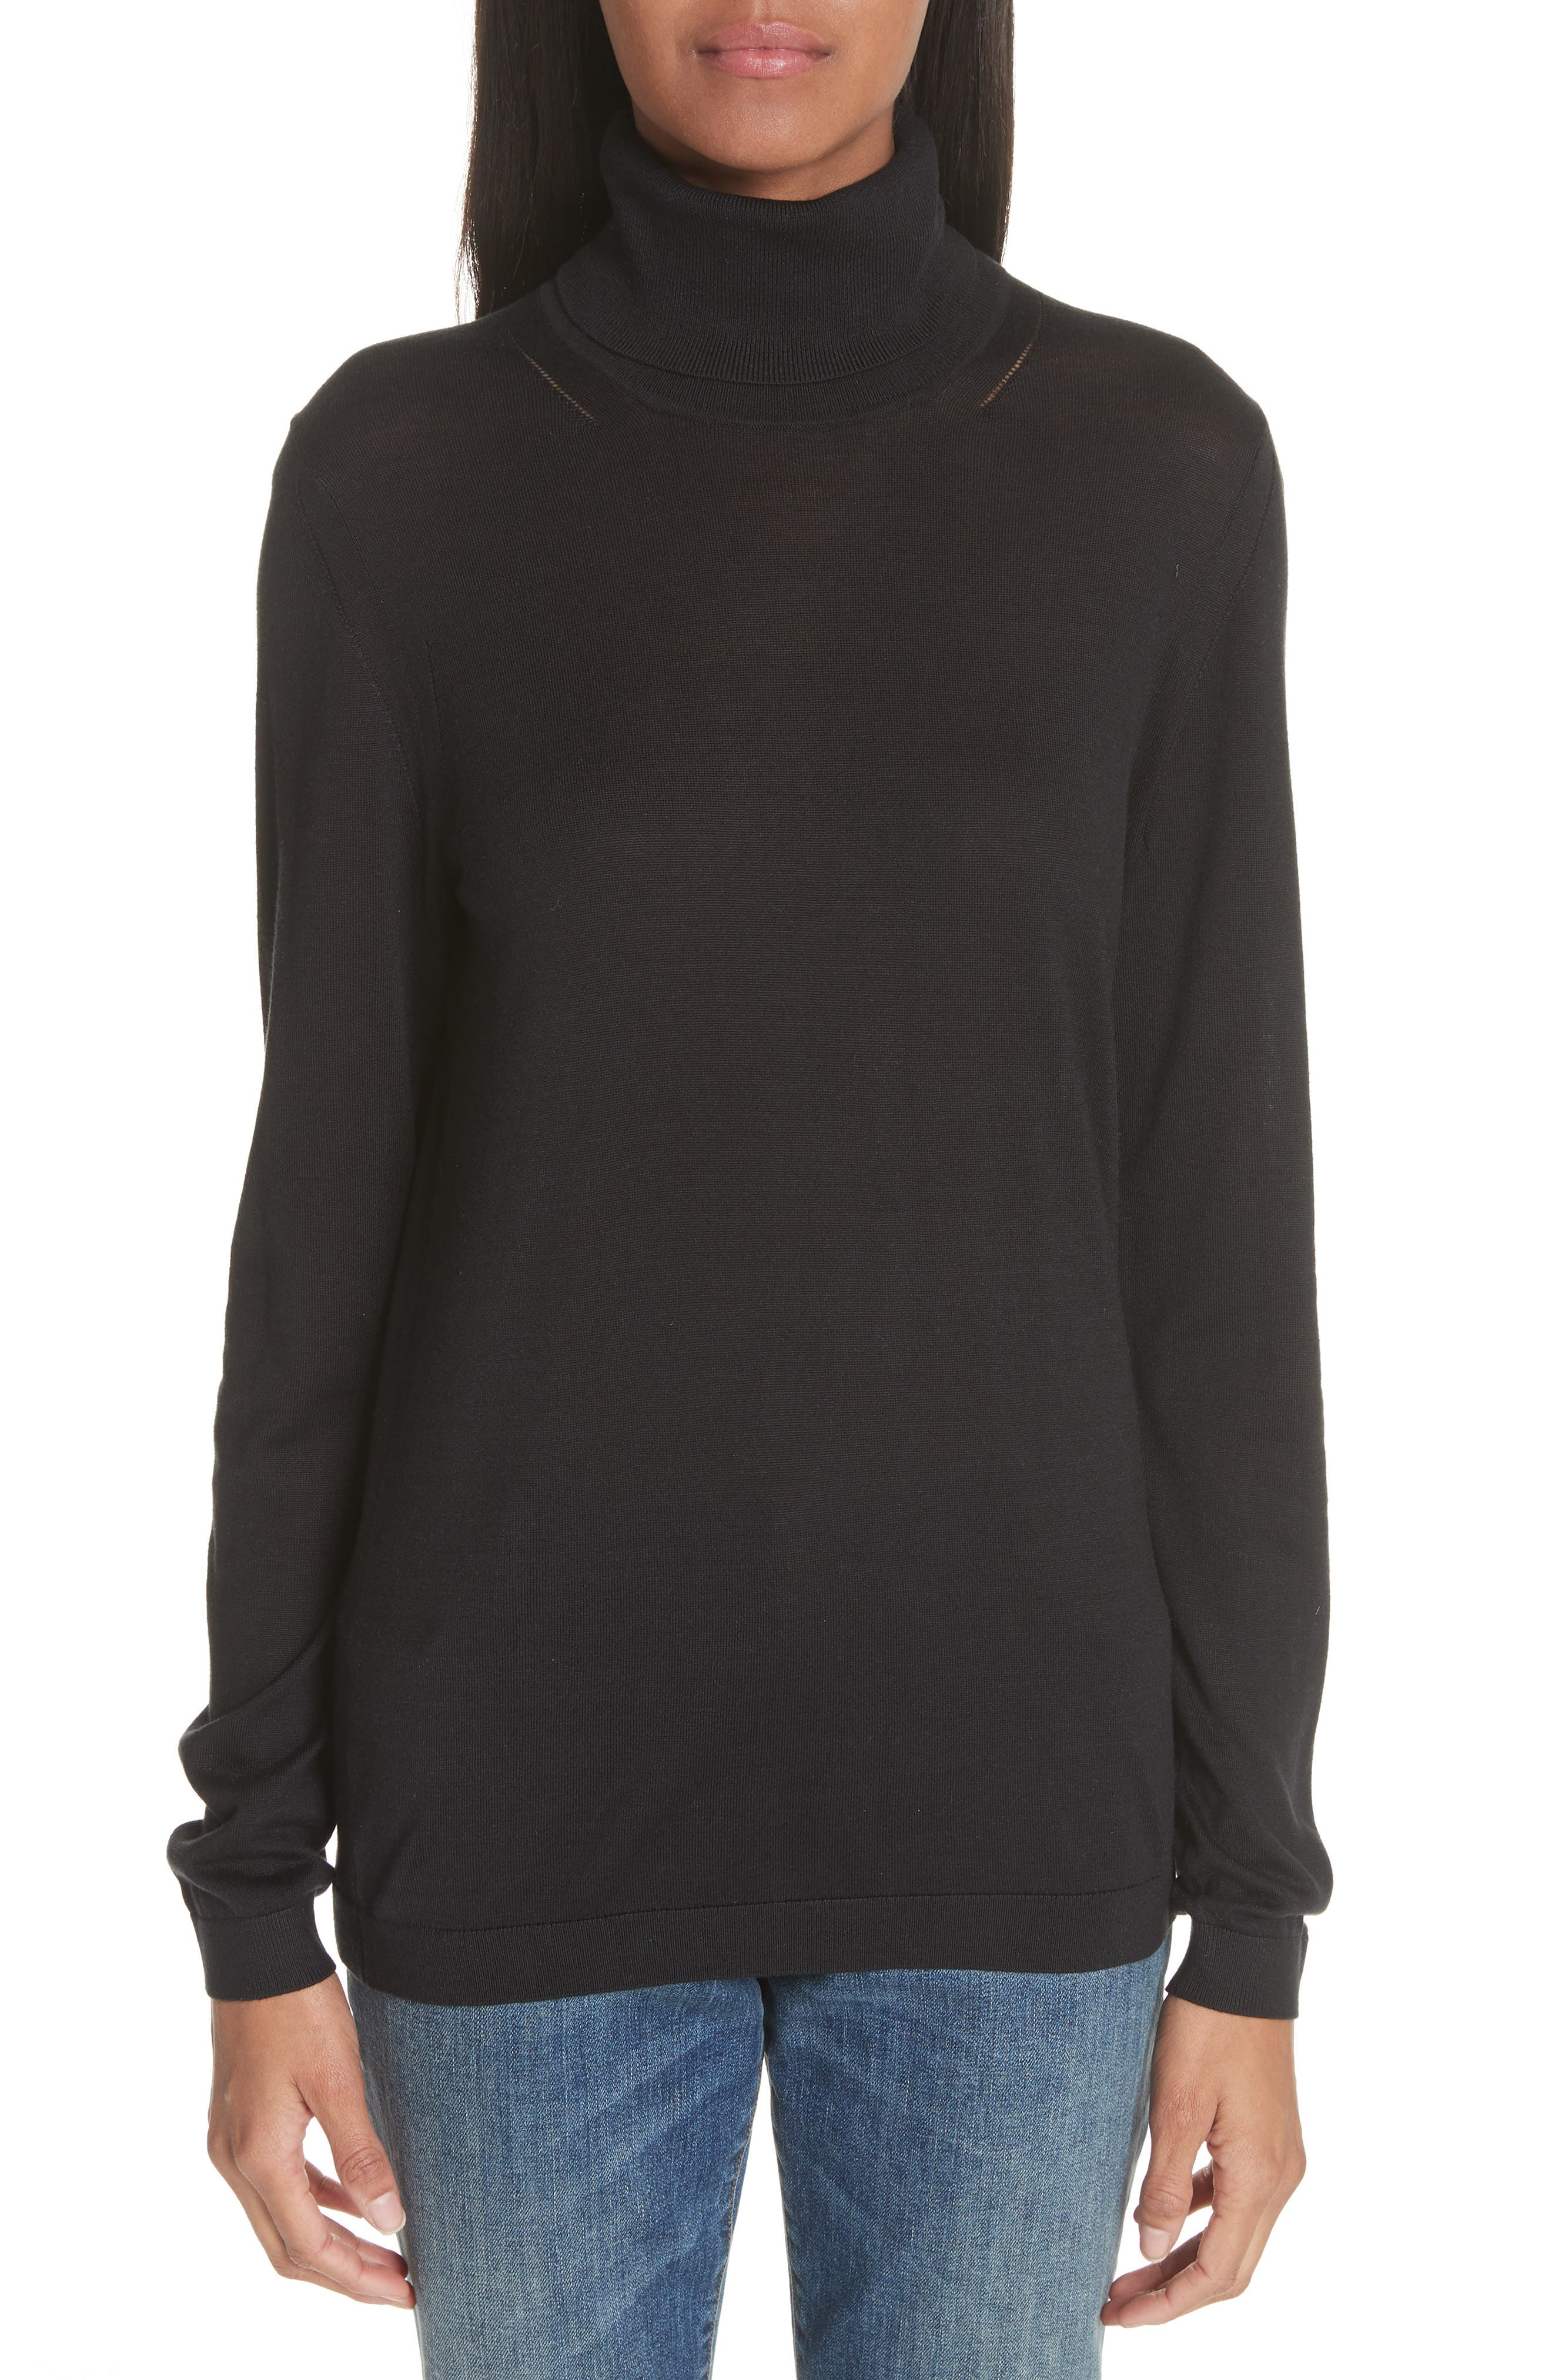 Burberry Kisco Silk & Cashmere Turtleneck Sweater